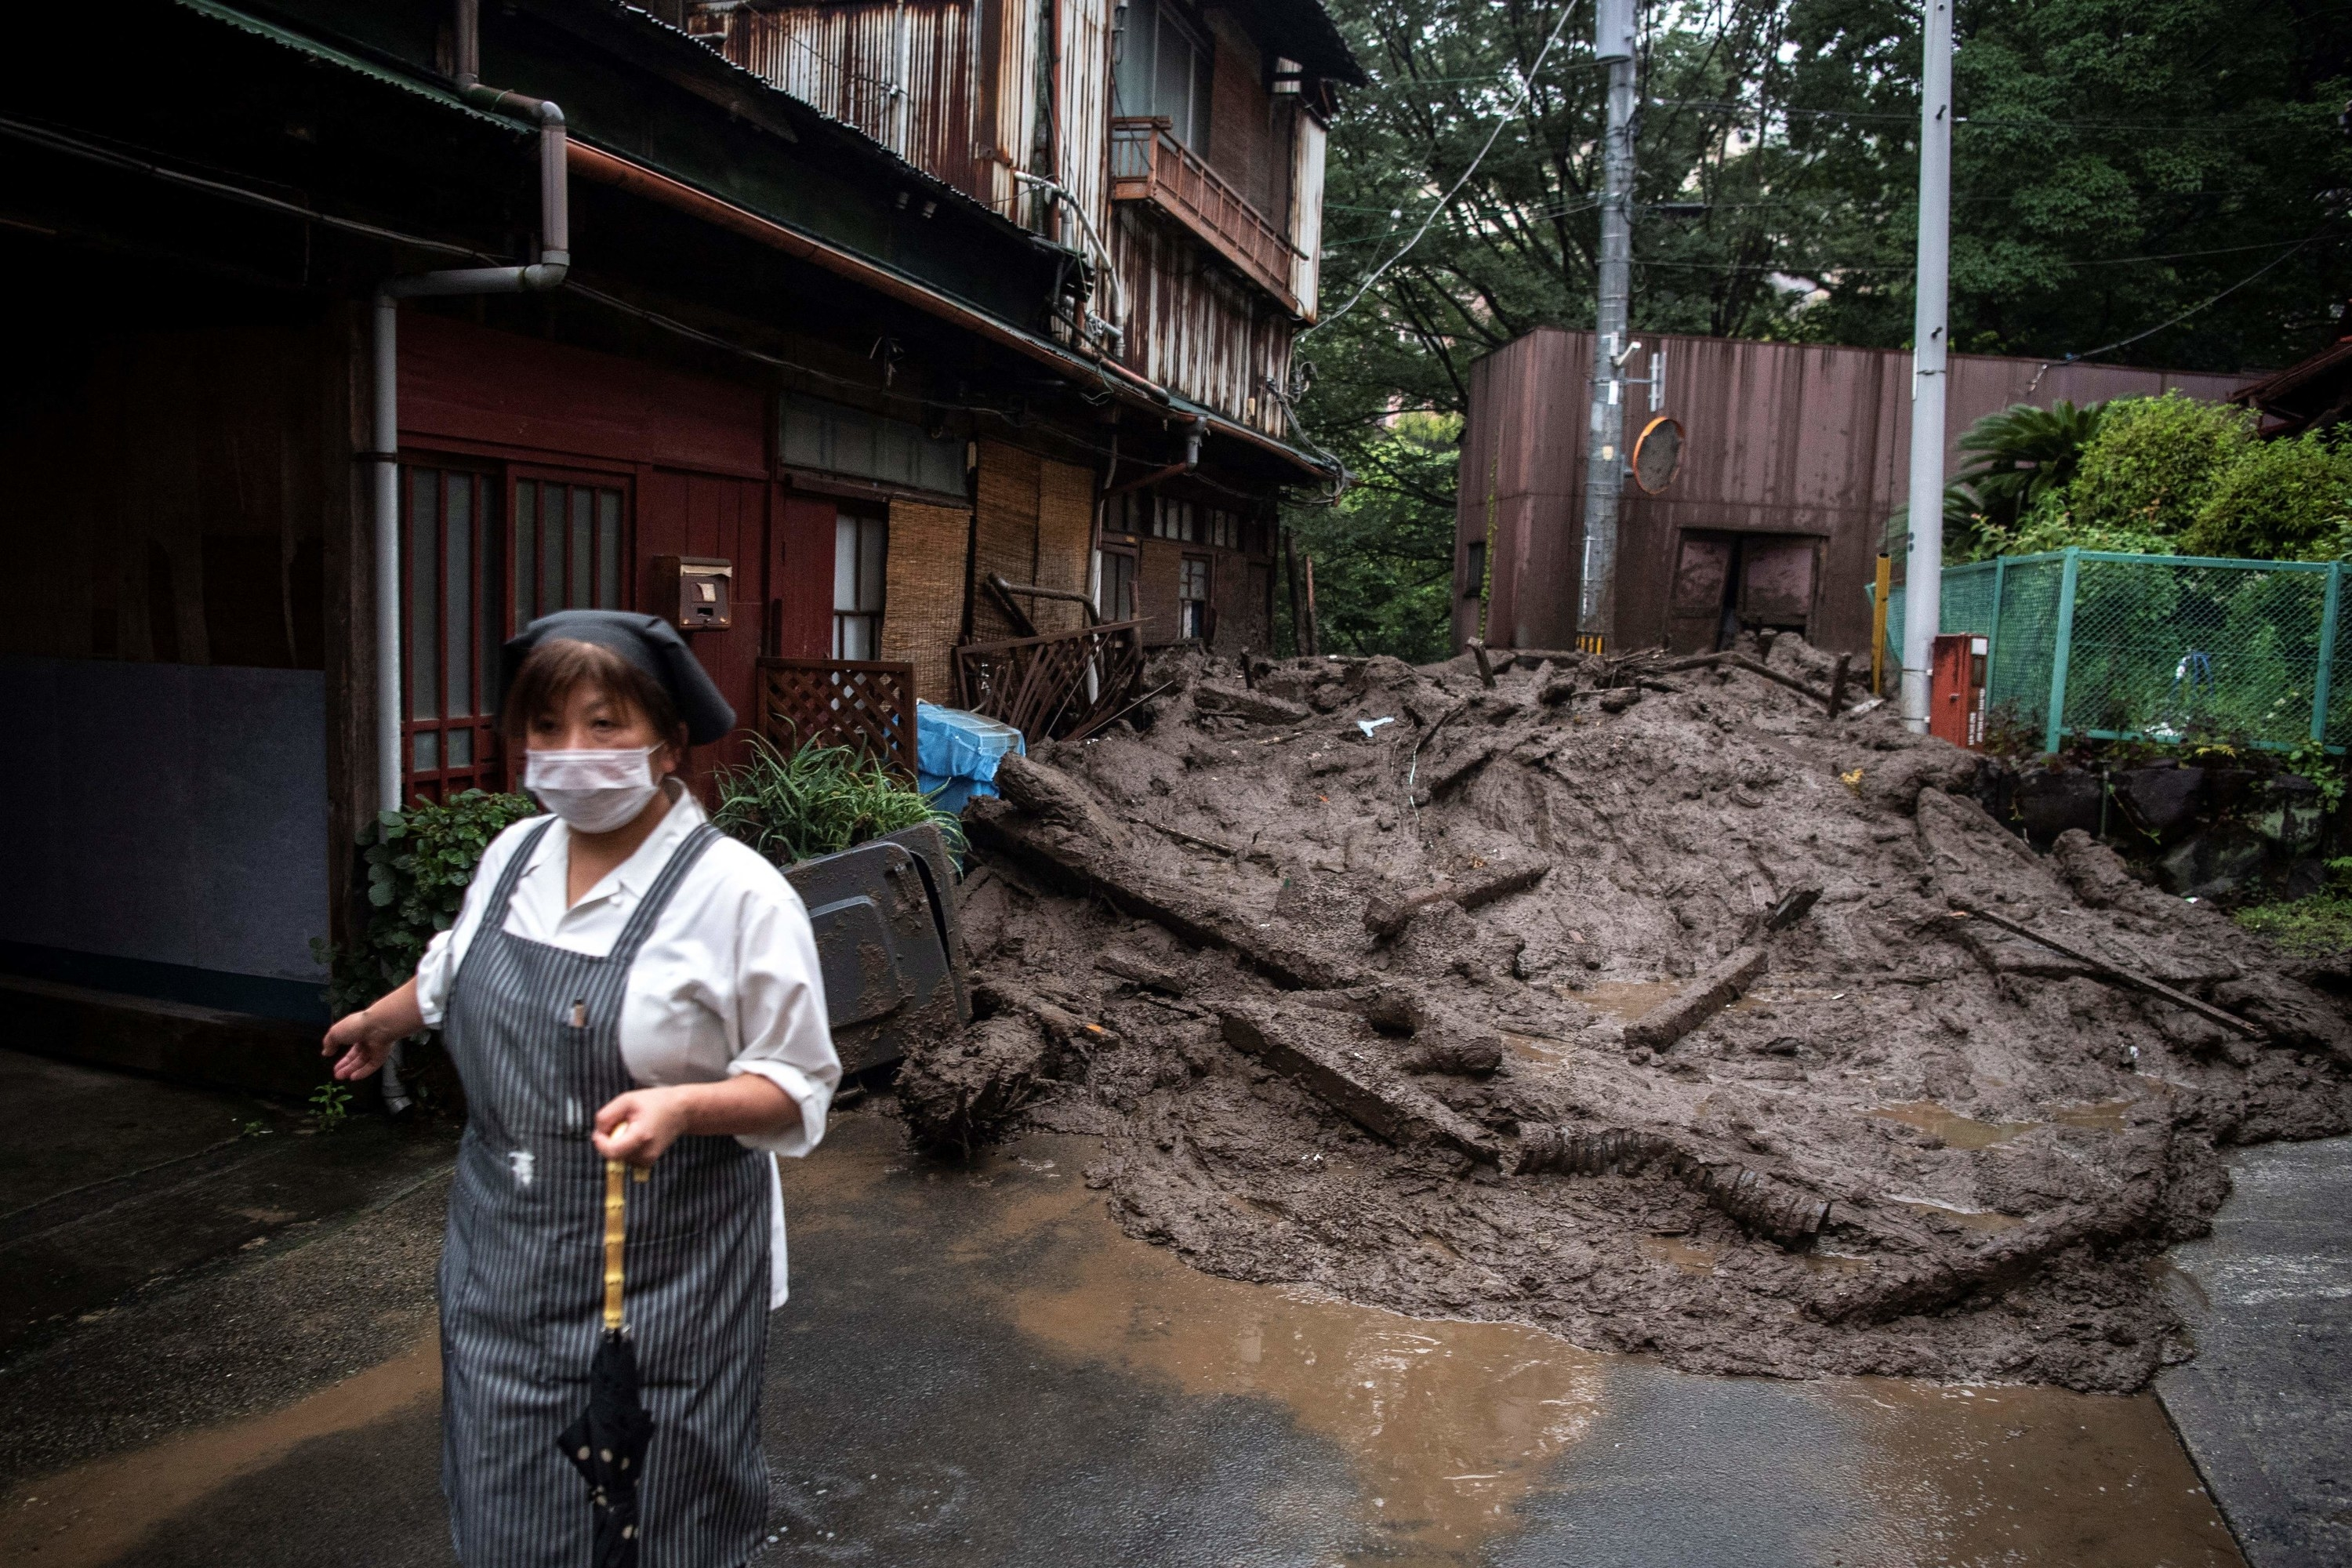 A woman holds an umbrella and stands in front of a giant mudslide in front of houses